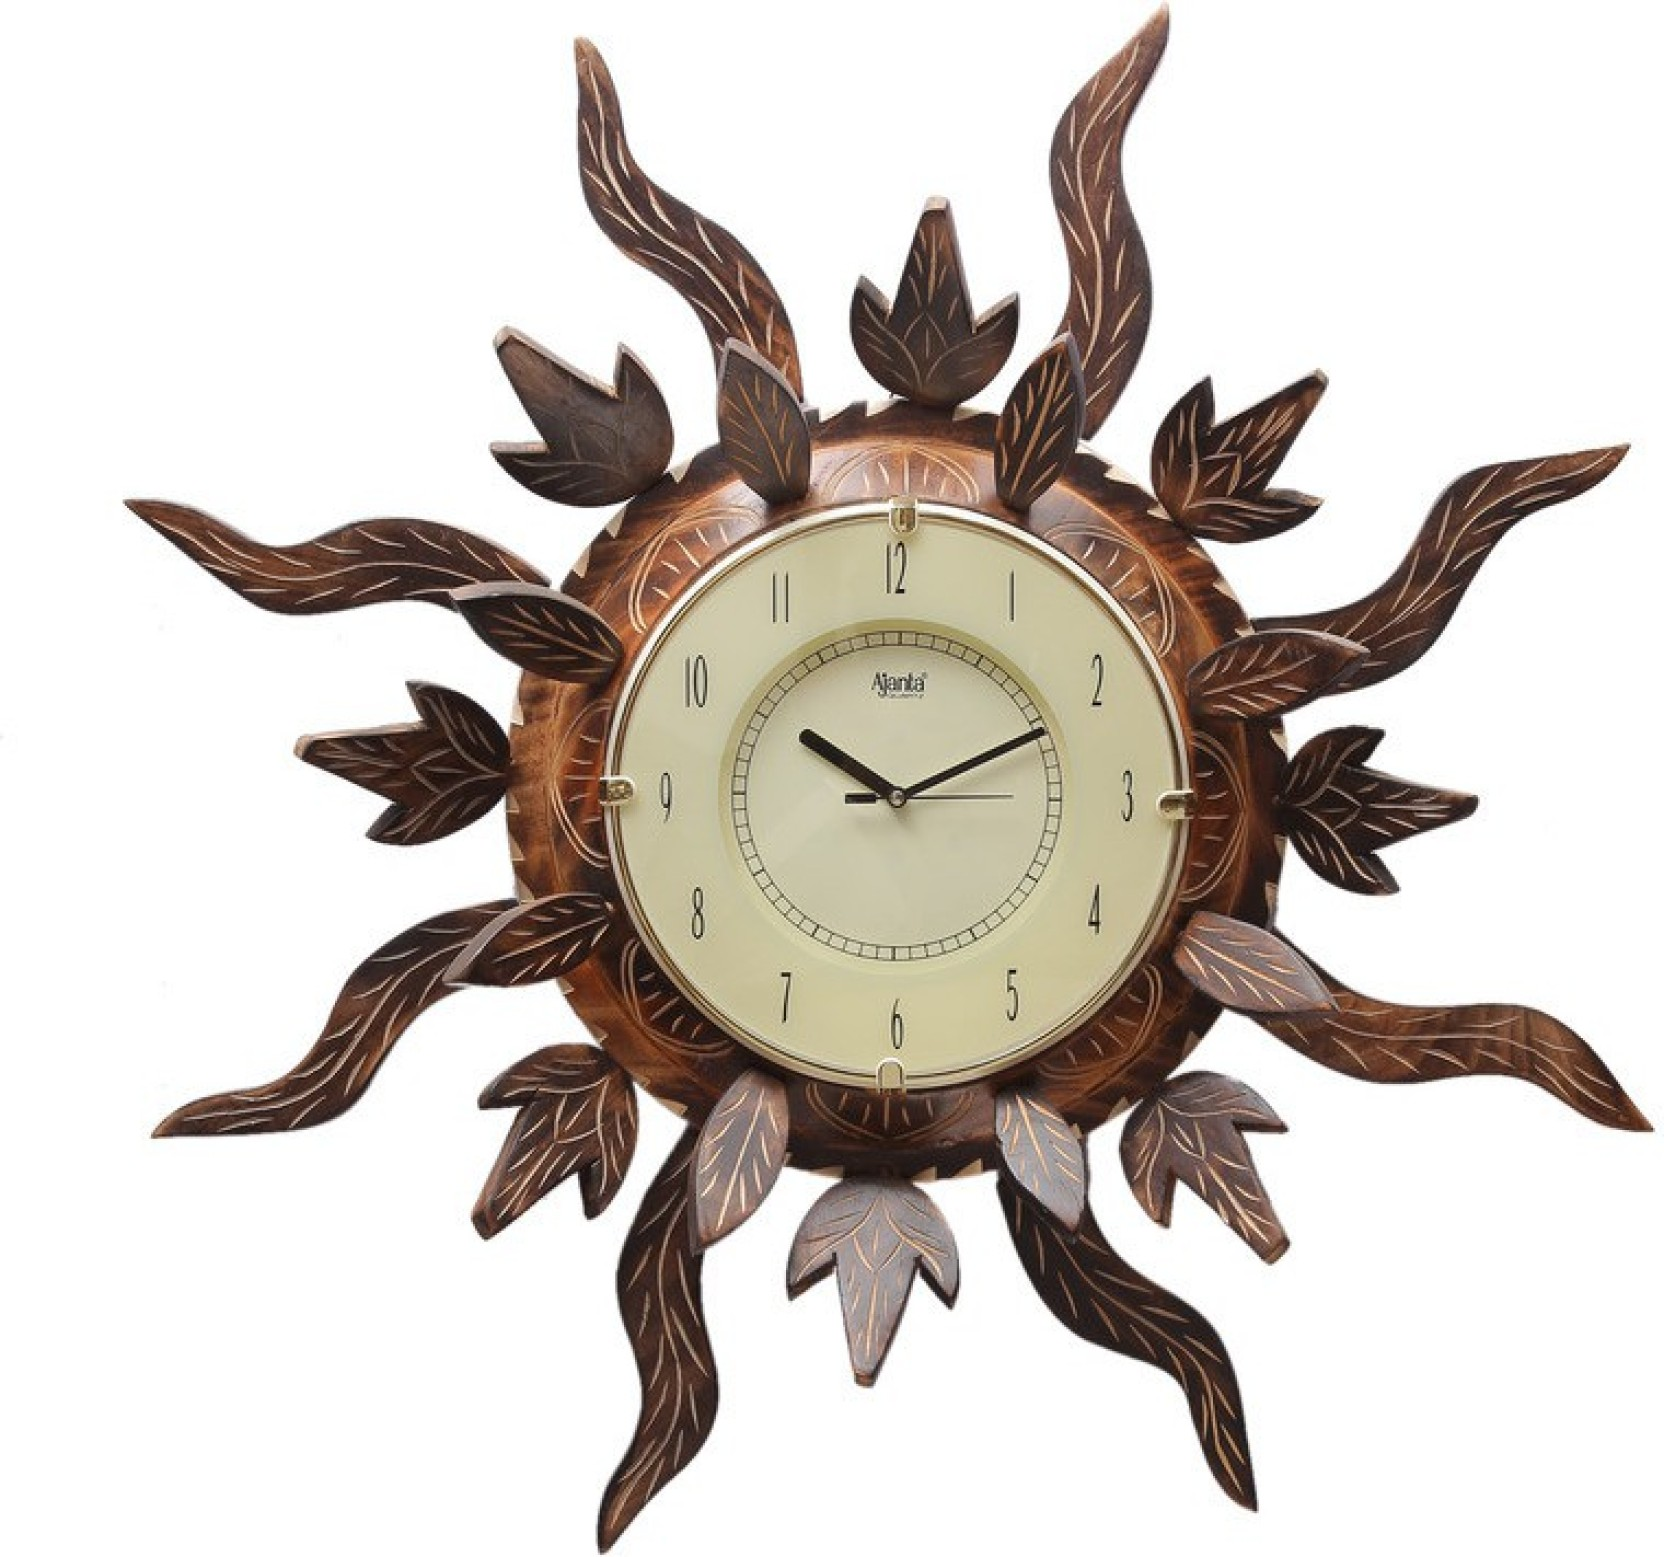 Ajanta analog wall clock price in india buy ajanta analog wall ajanta analog wall clock add to cart amipublicfo Choice Image